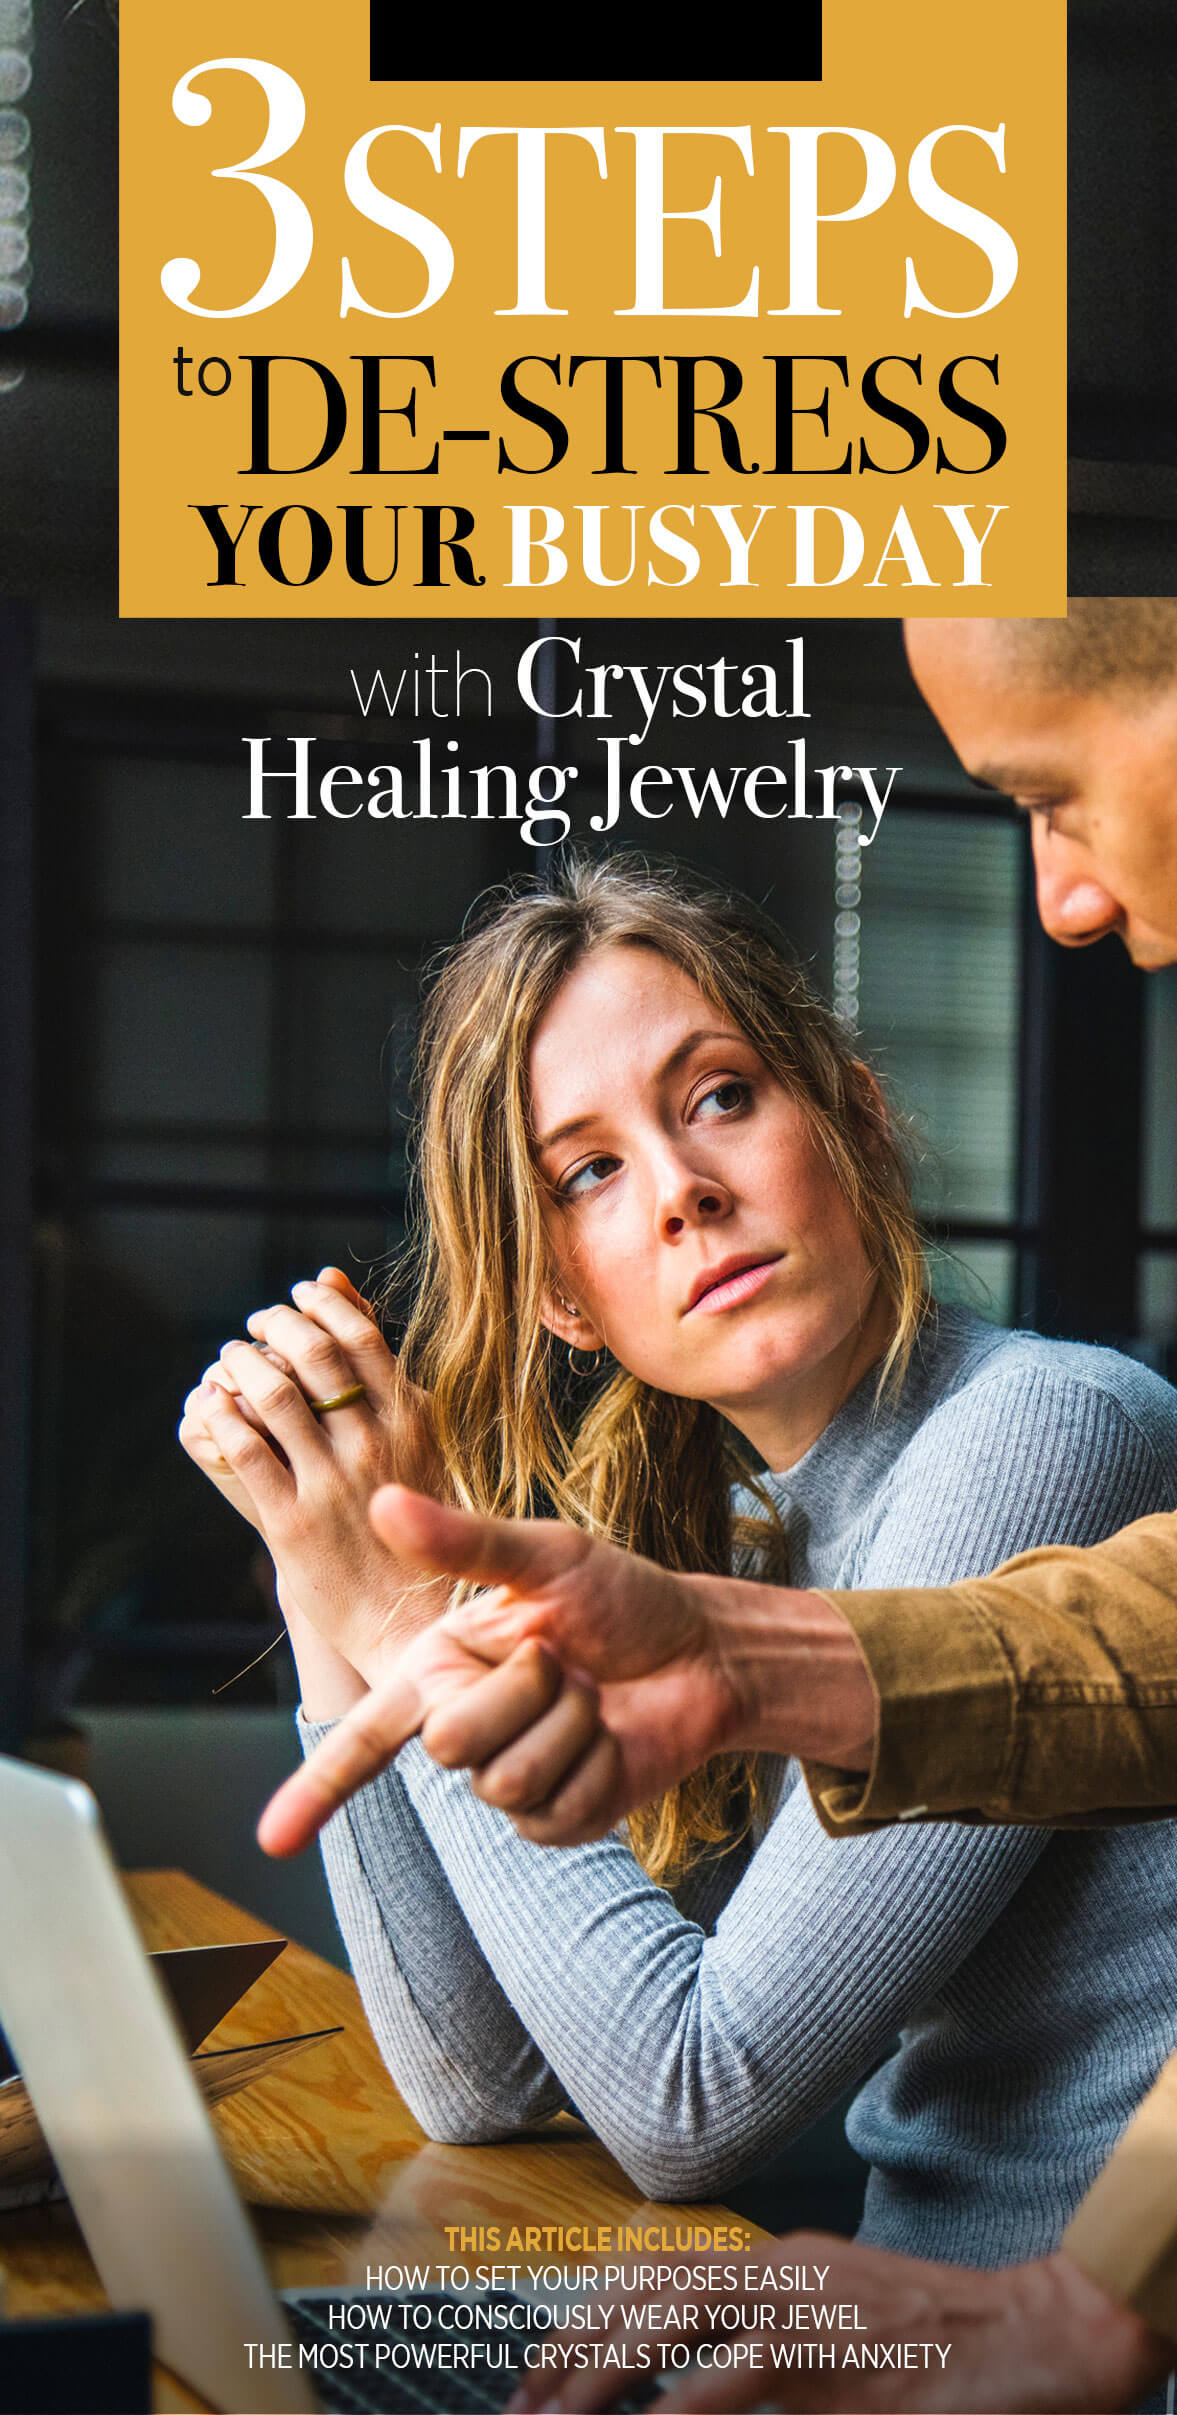 De-Stress Your Busy Day instantly With Crystal Healing Jewelry